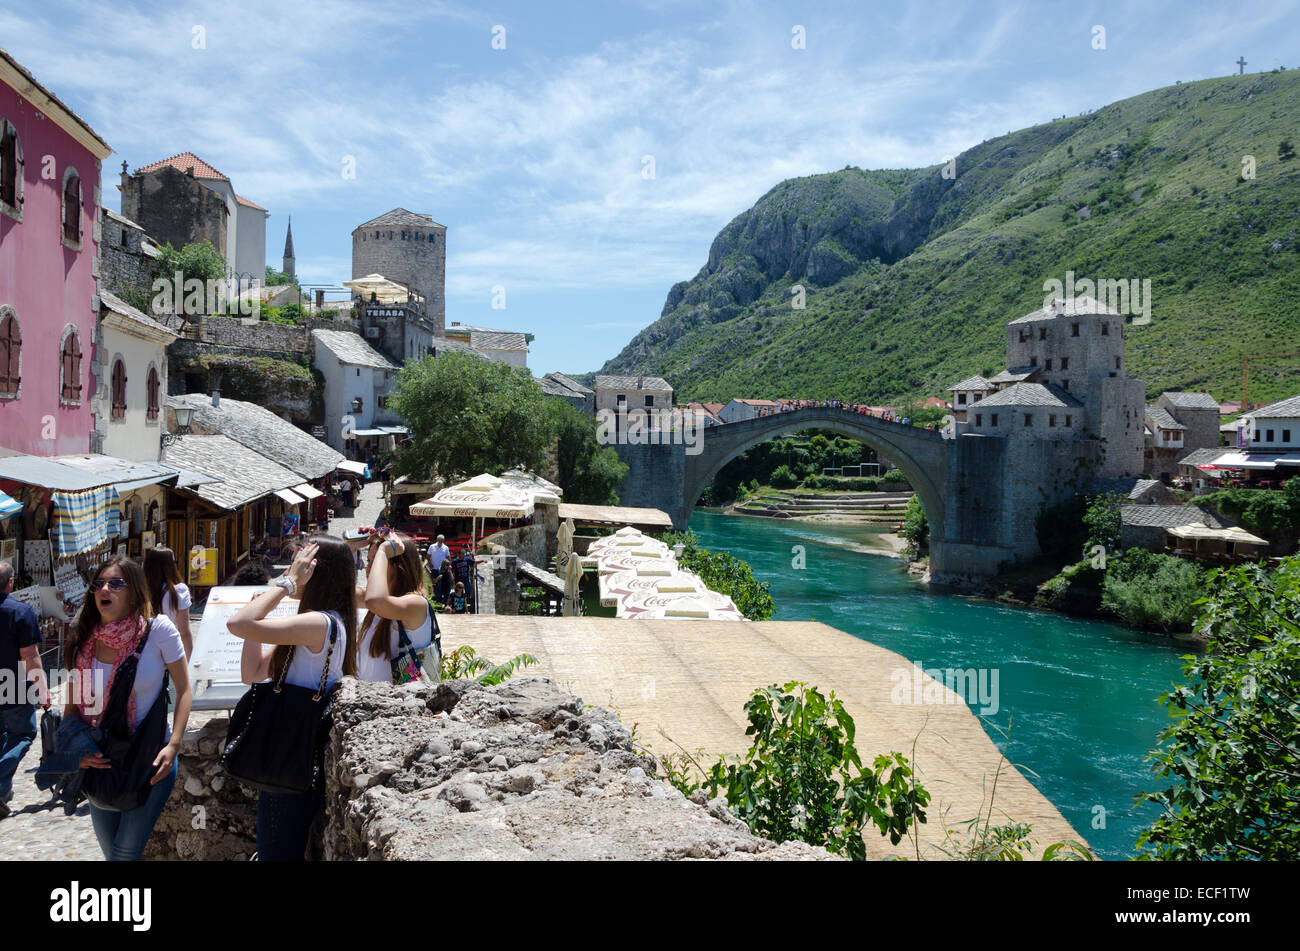 MOSTAR, BOSNIA AND HERZEGOVINA - MAY 18, 2013: Three young woman tourists in Mostar. In the background is the bridge - Stock Image